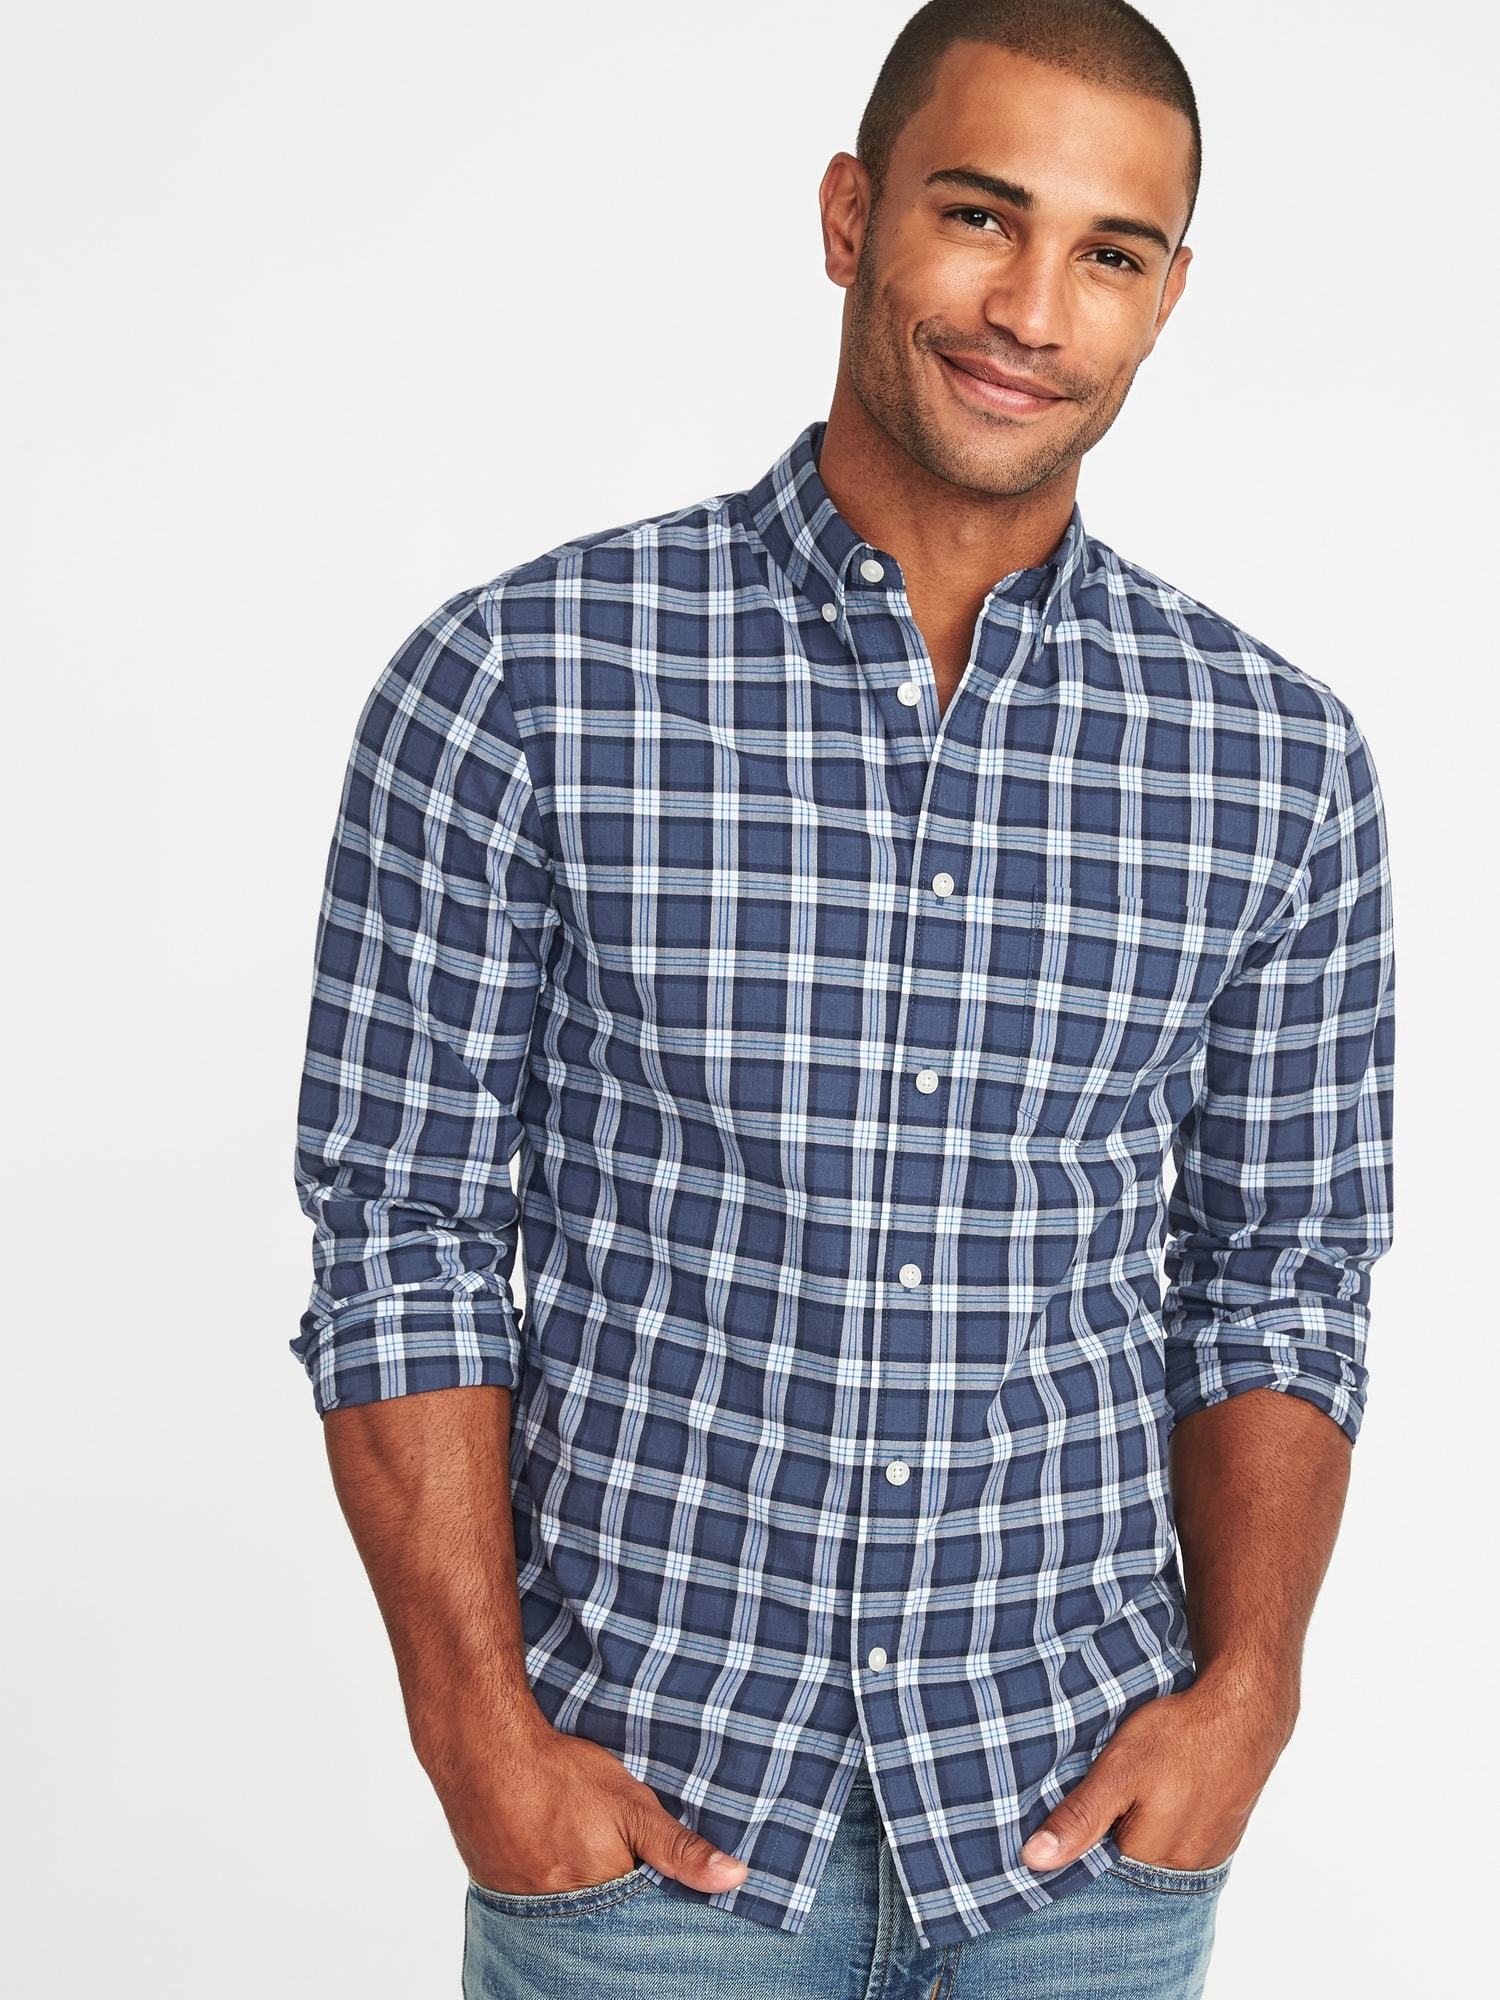 Slim-Fit Built-In Flex Plaid Everyday Shirt for Men  870718501